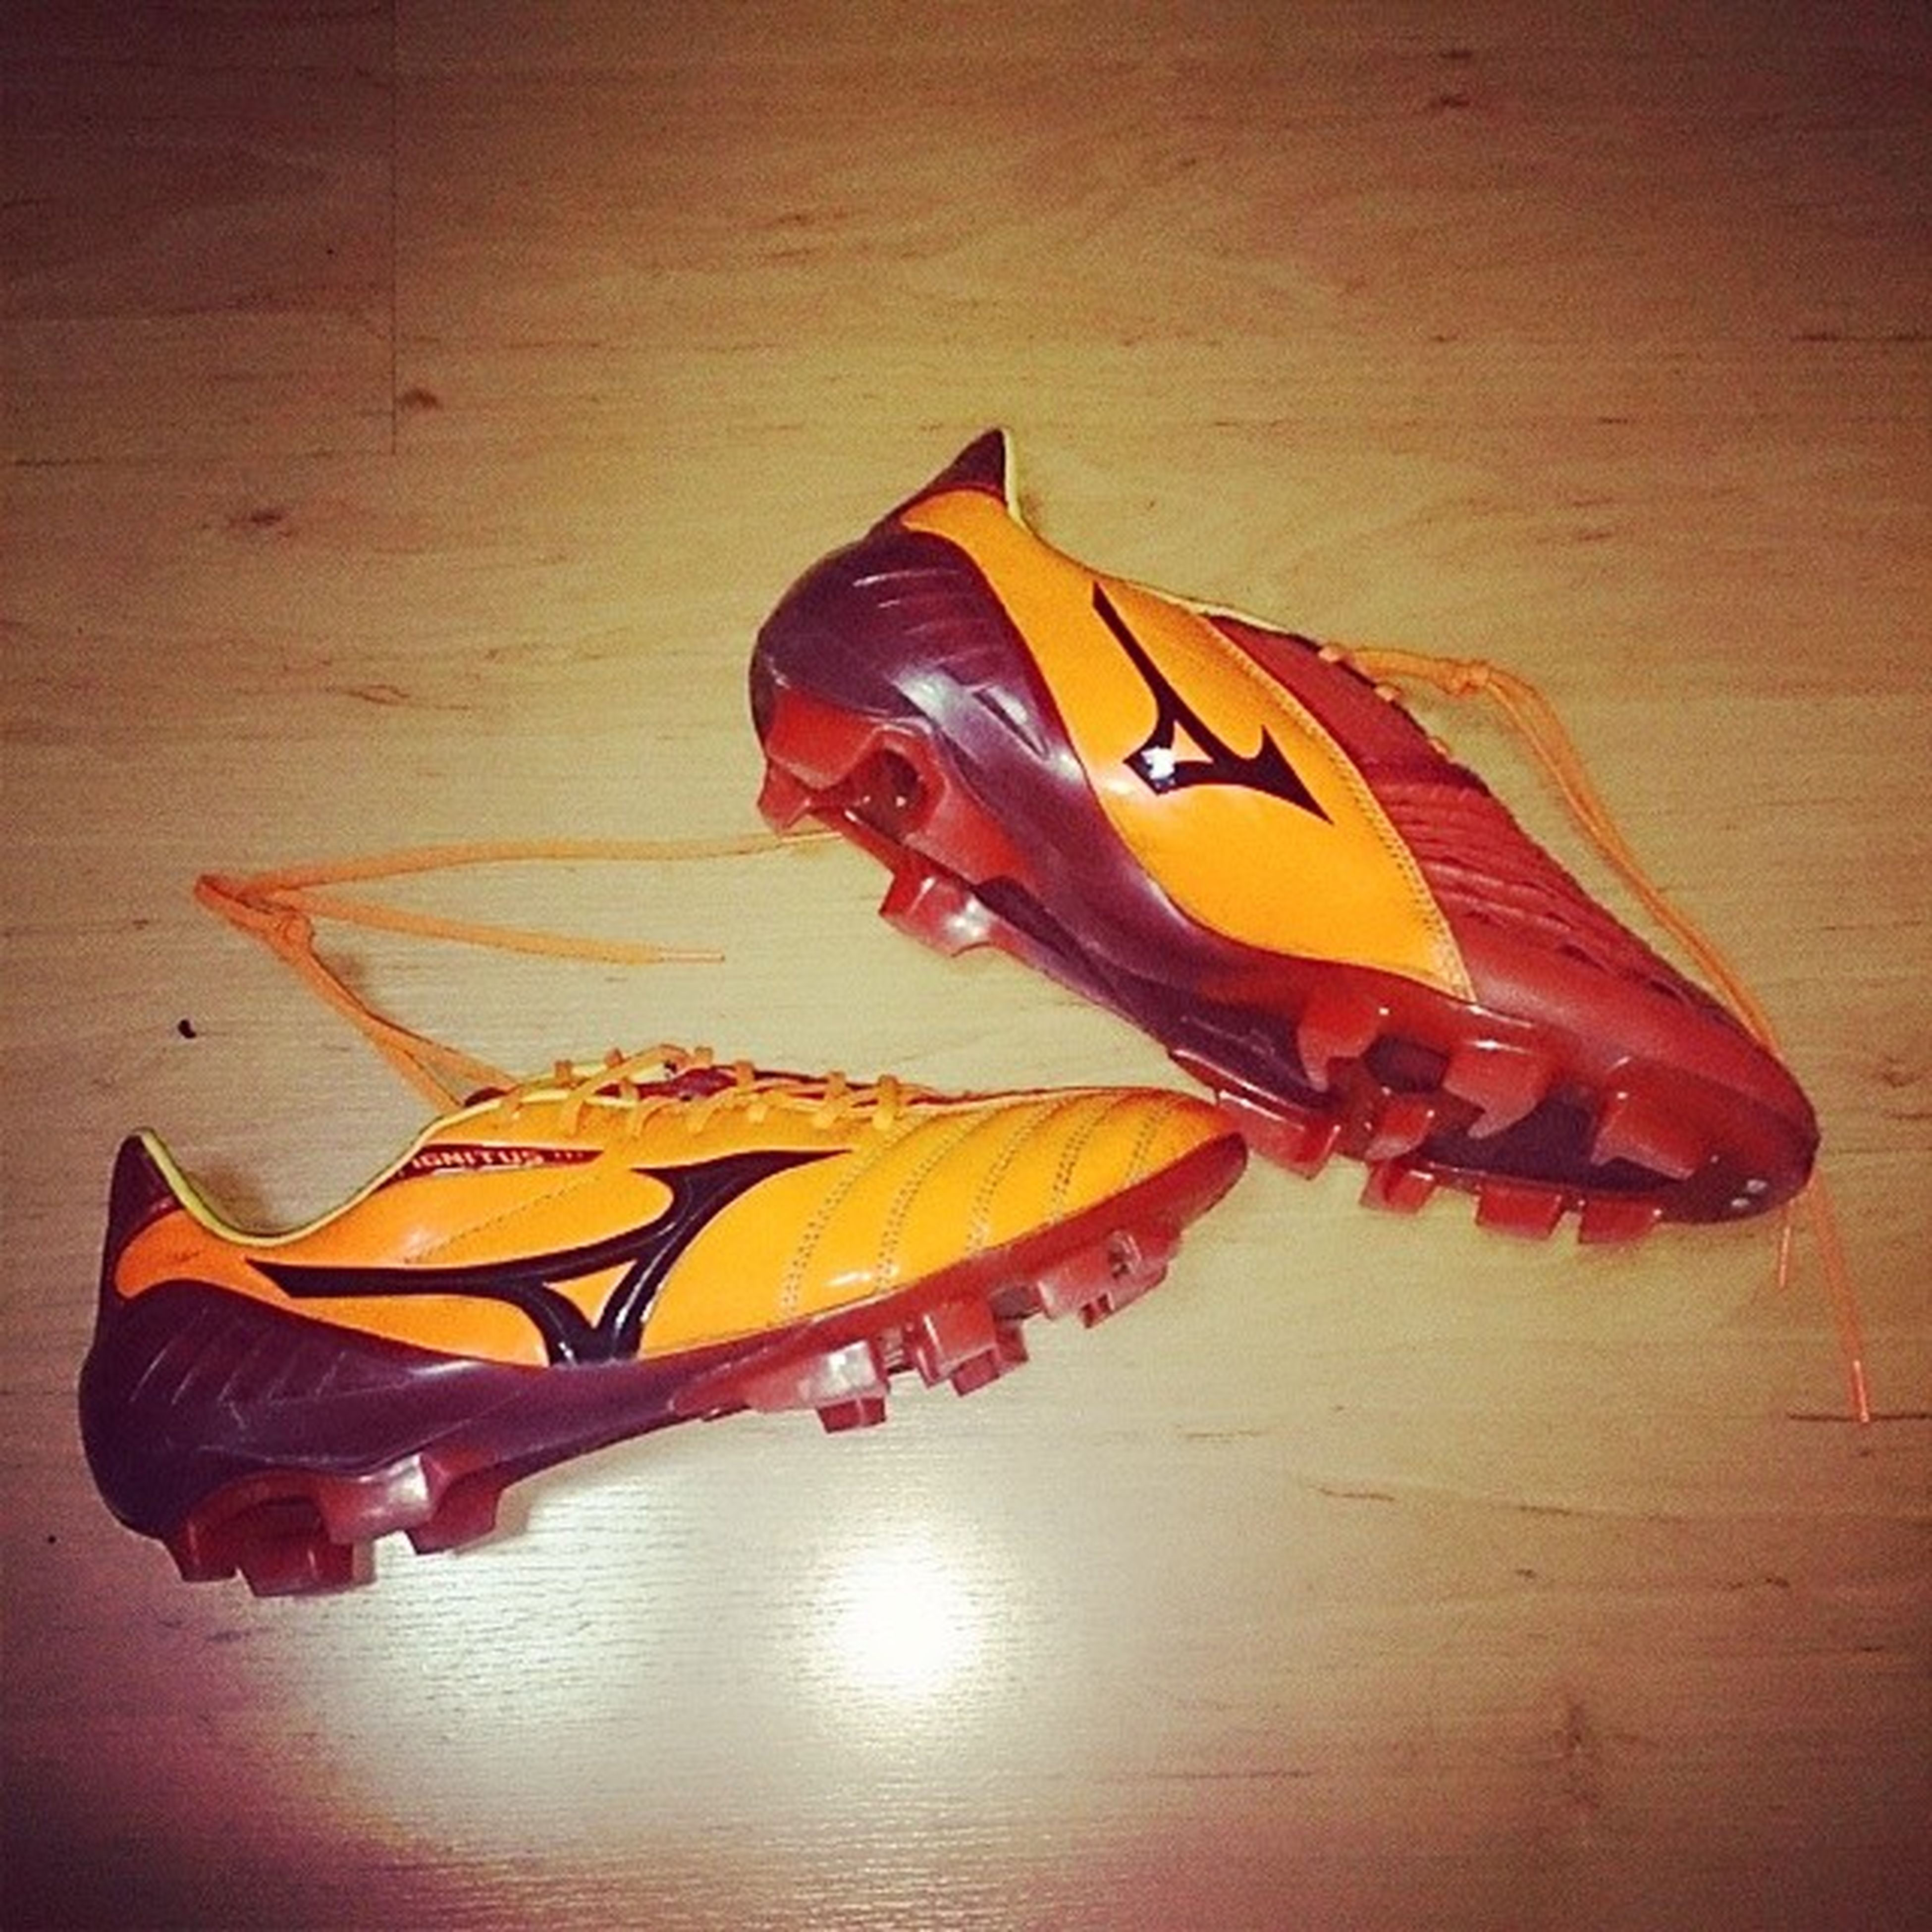 So I decided to try something new... Mizunosg IgnitusWave Sbspotlight Footballboots